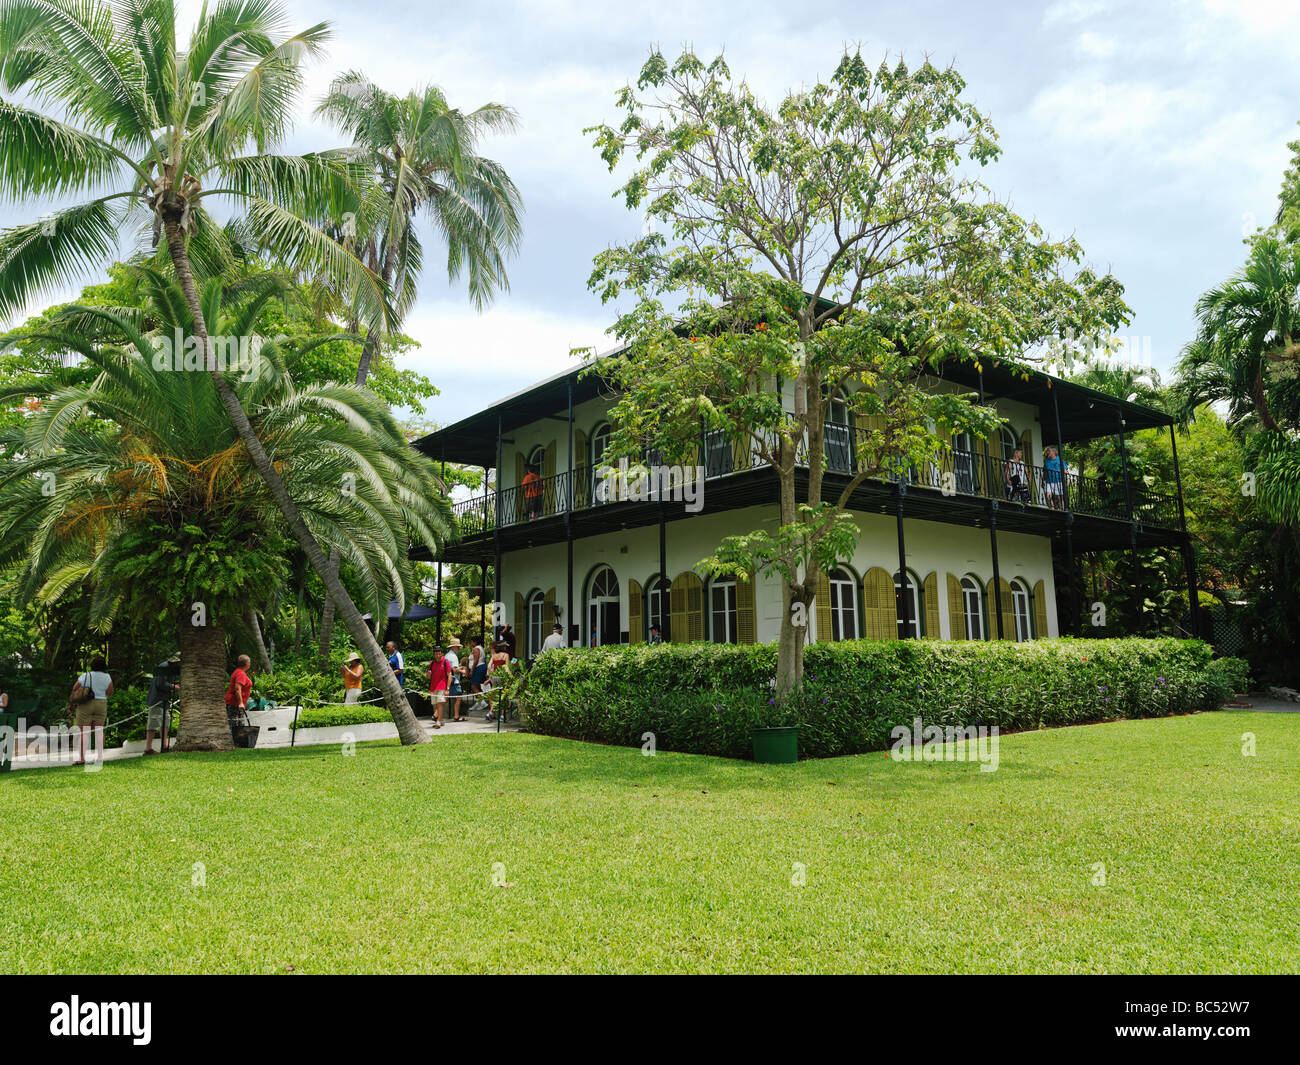 Ernest Hemingway House in Key West,exterior view Stock Photo